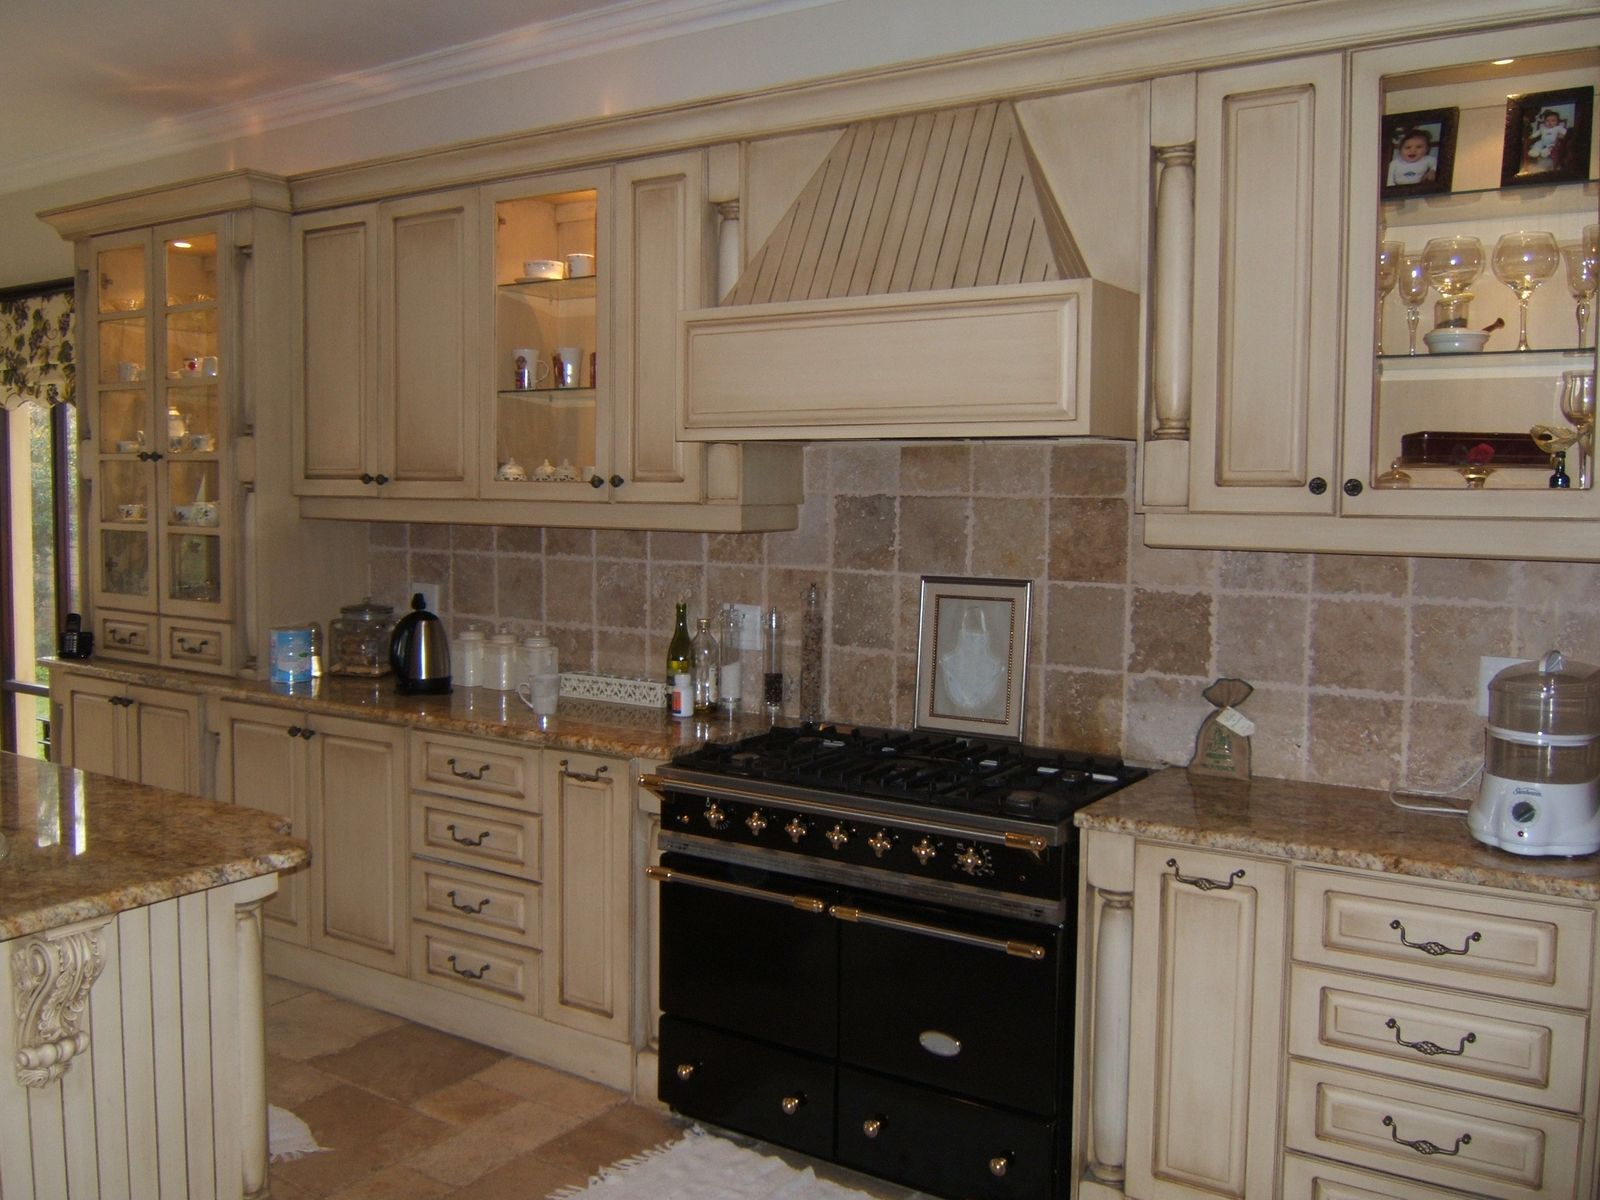 French Country Kitchen Backsplash Ideas Pictures Hawk Haven